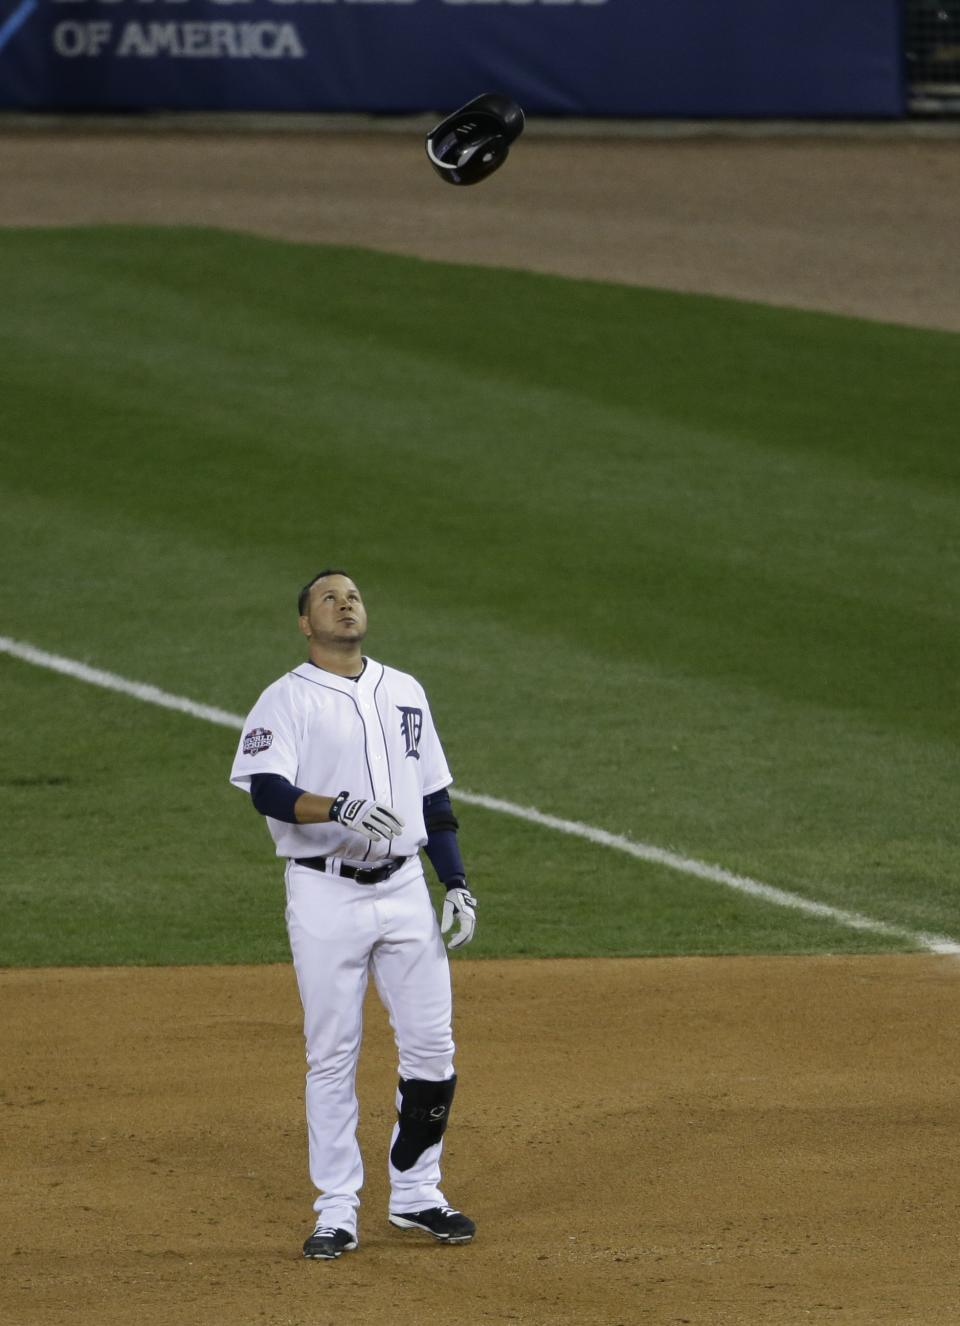 Detroit Tigers' Jhonny Peralta tosses his helmet in air after he popped out in sixth inning of Game 3 of baseball's World Series against the San Francisco Giants Saturday, Oct. 27, 2012, in Detroit (AP Photo/Patrick Semansky)